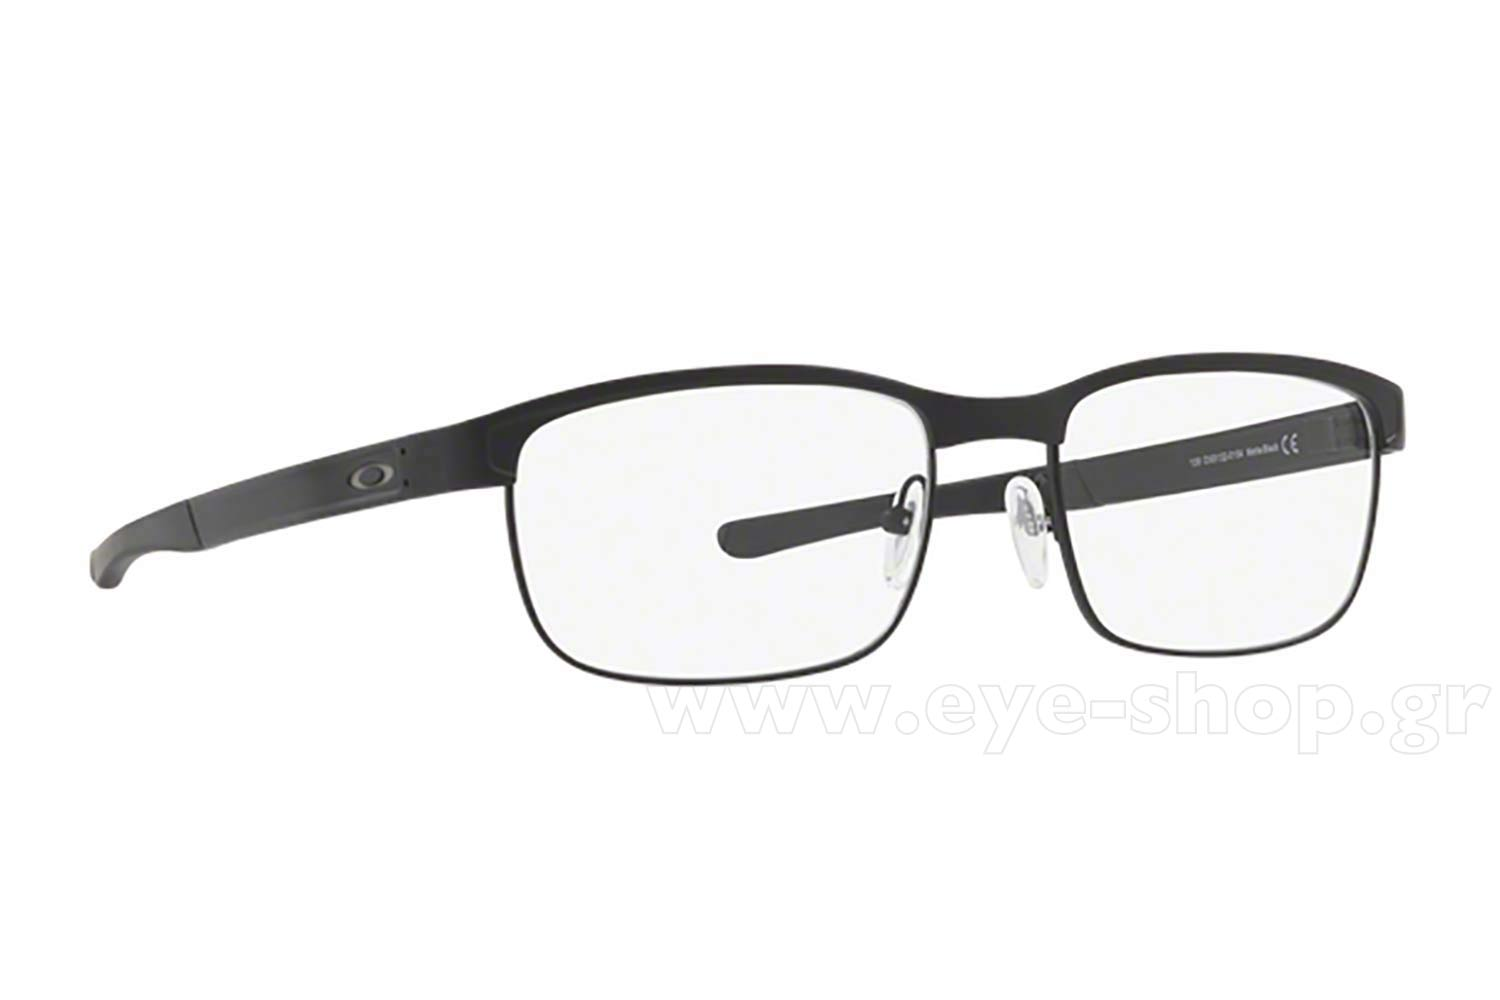 Γυαλιά Oakley SURFACE PLATE 5132 01